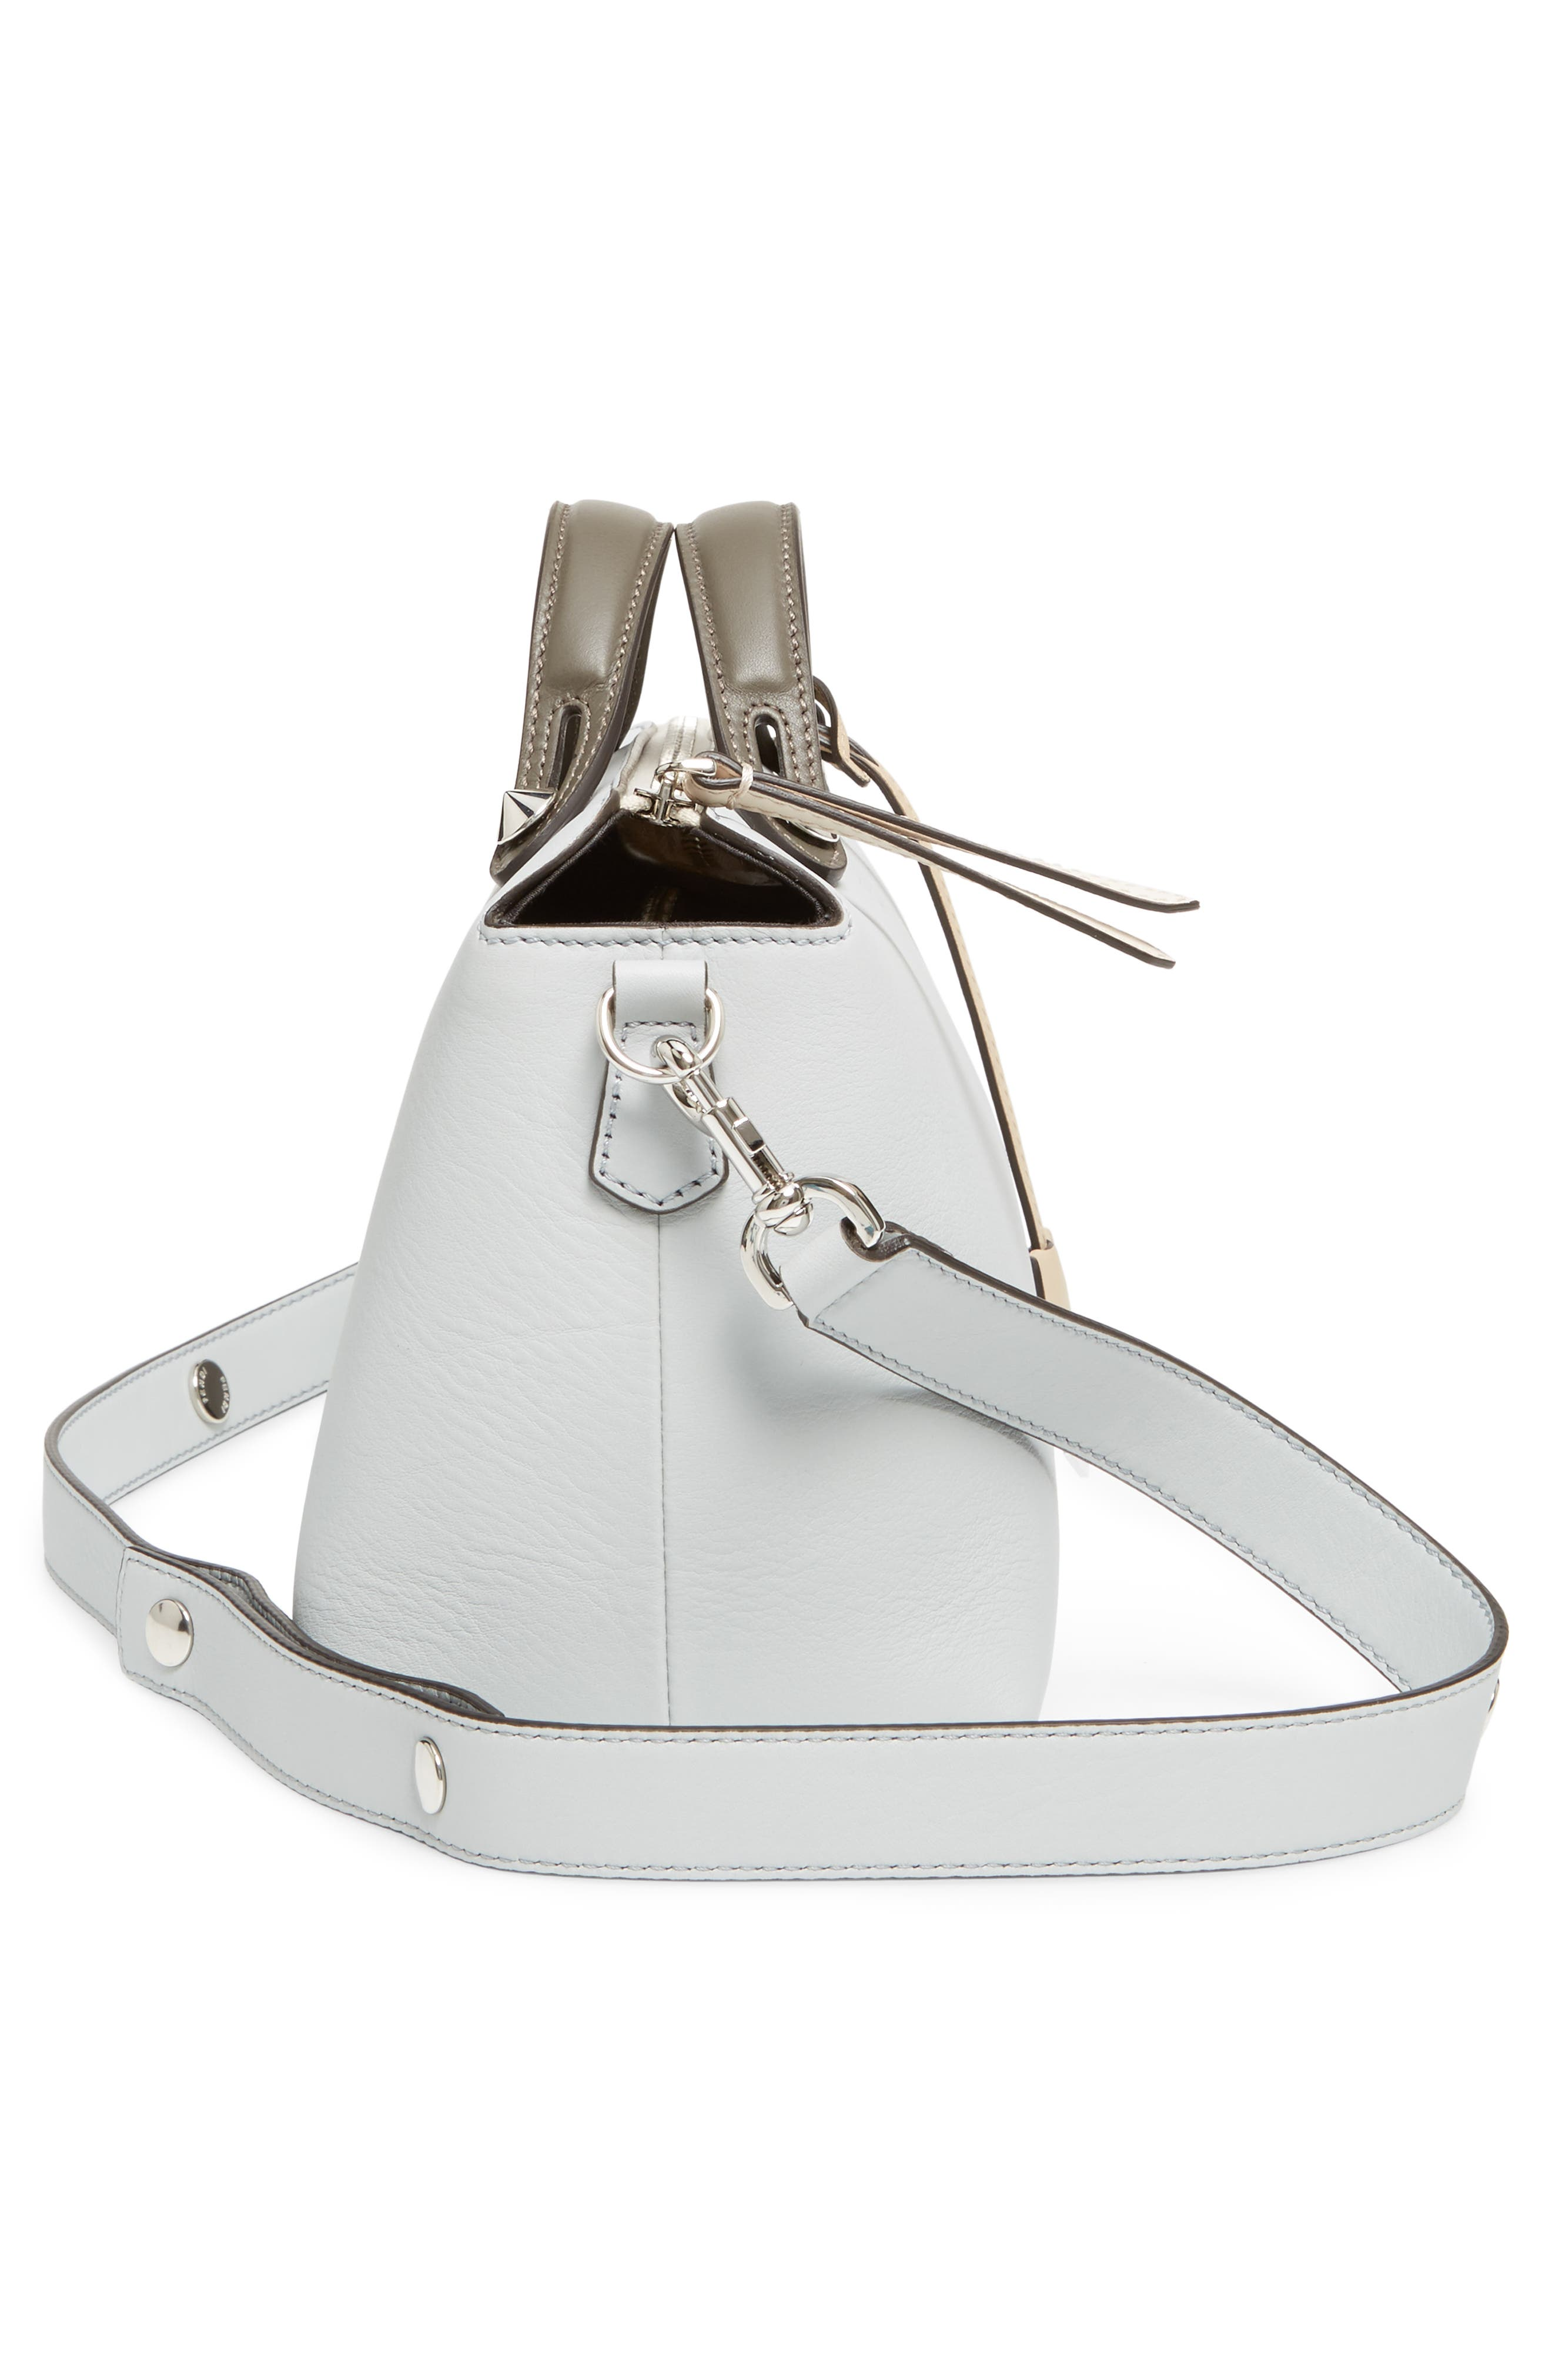 'Medium By the Way' Colorblock Leather Shoulder Bag,                             Alternate thumbnail 54, color,